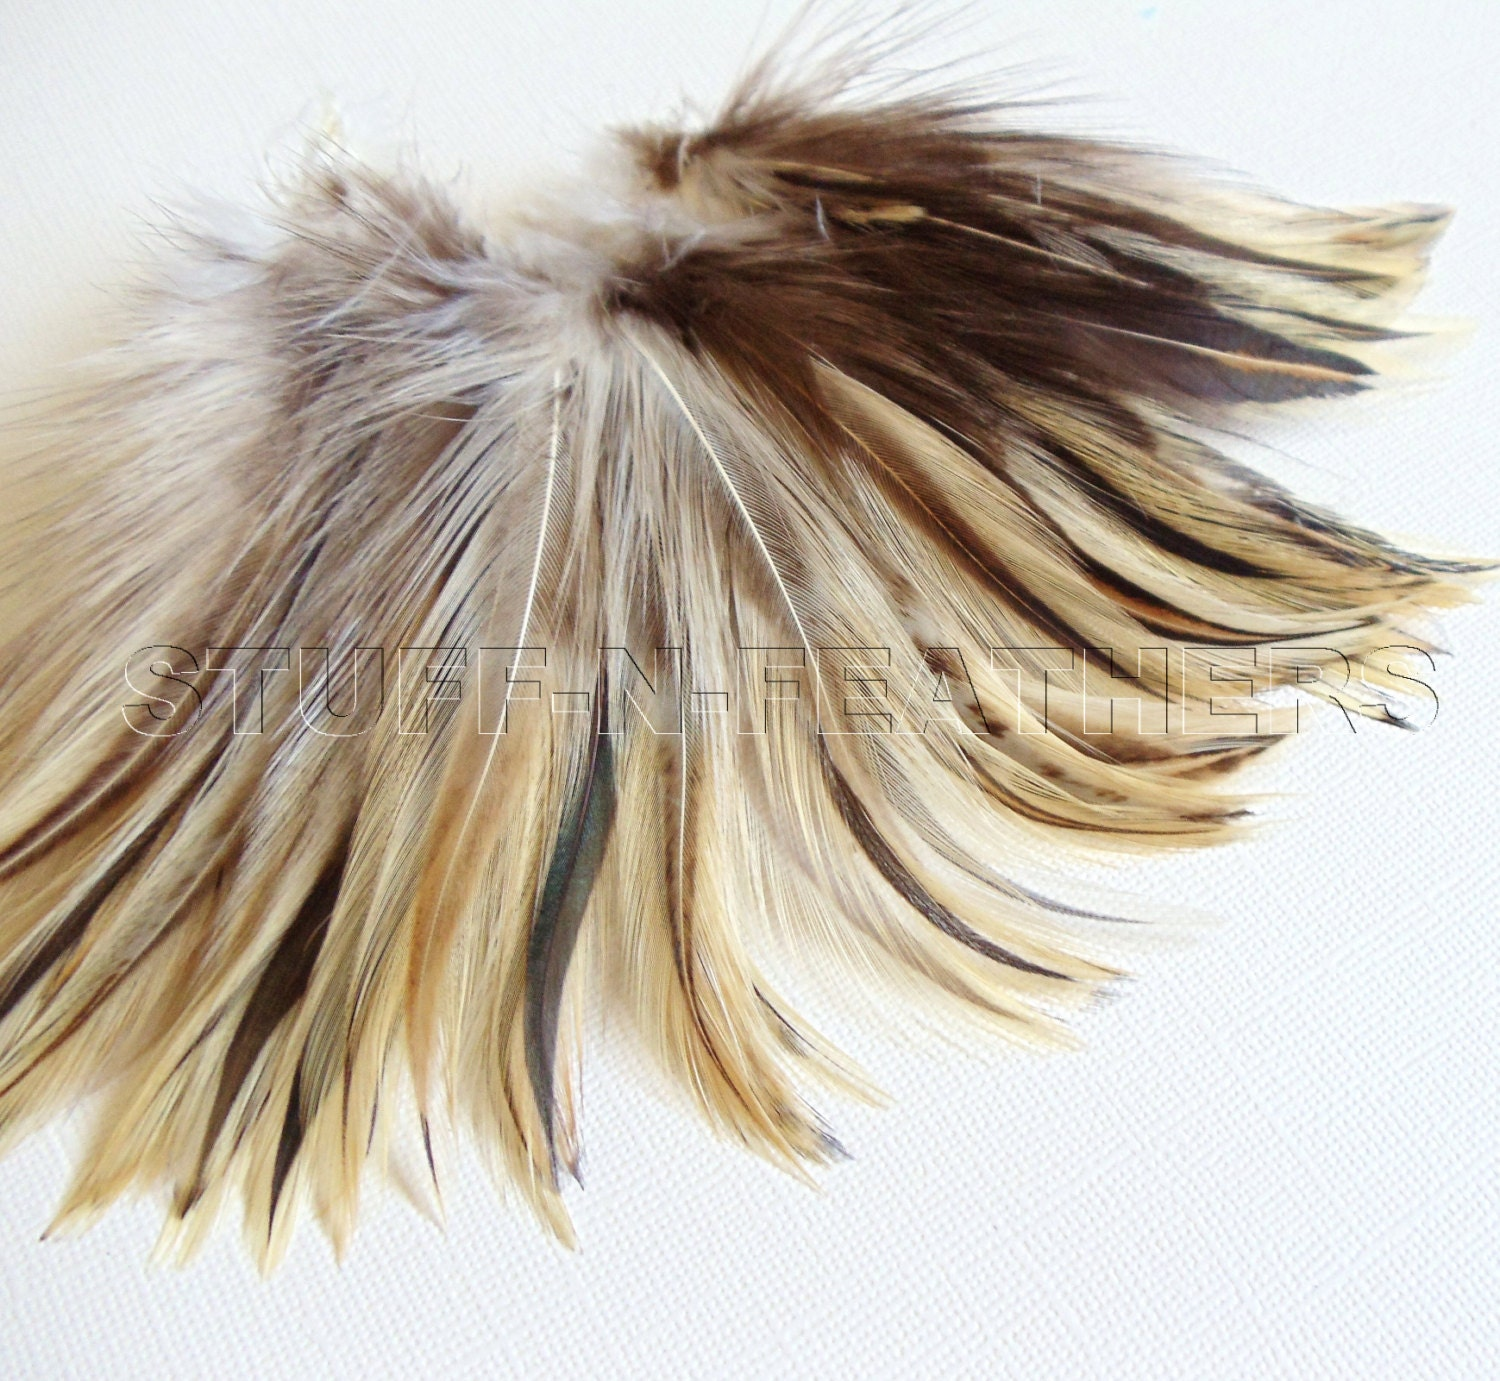 badger-cock-hackle-feathers-movie-with-a-lot-of-sex